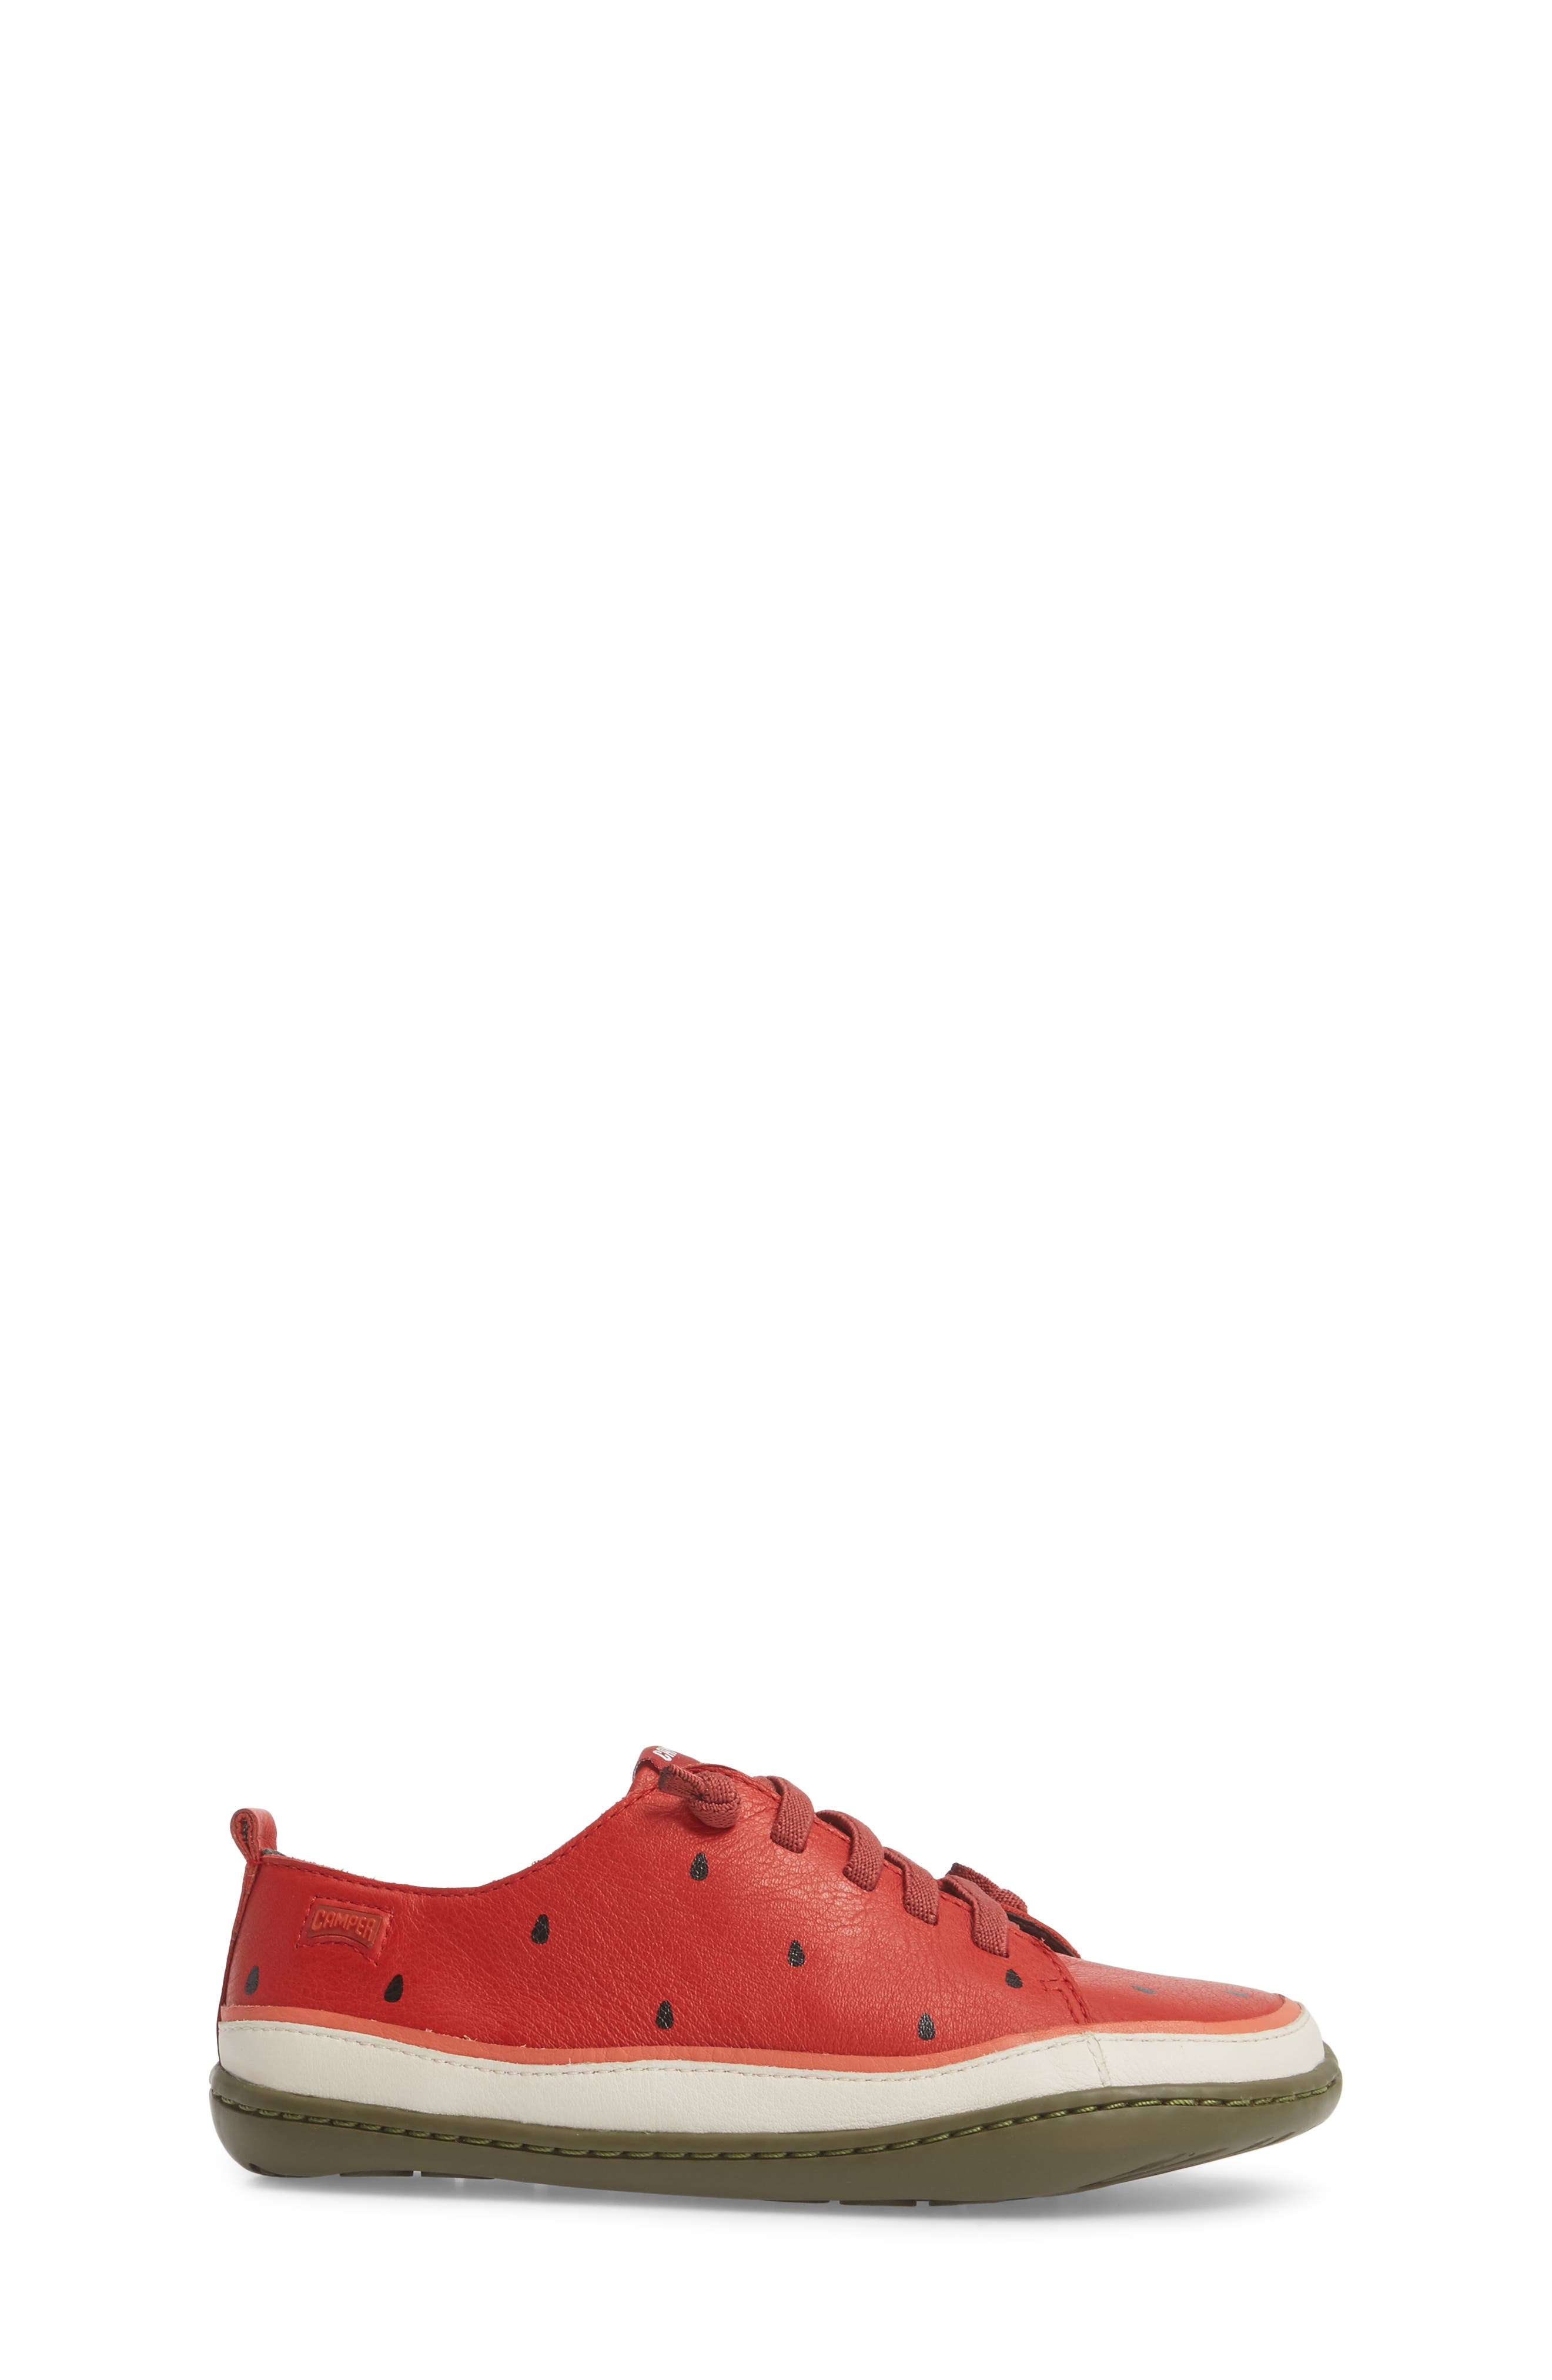 Twins Watermelon Sneaker,                             Alternate thumbnail 3, color,                             Red